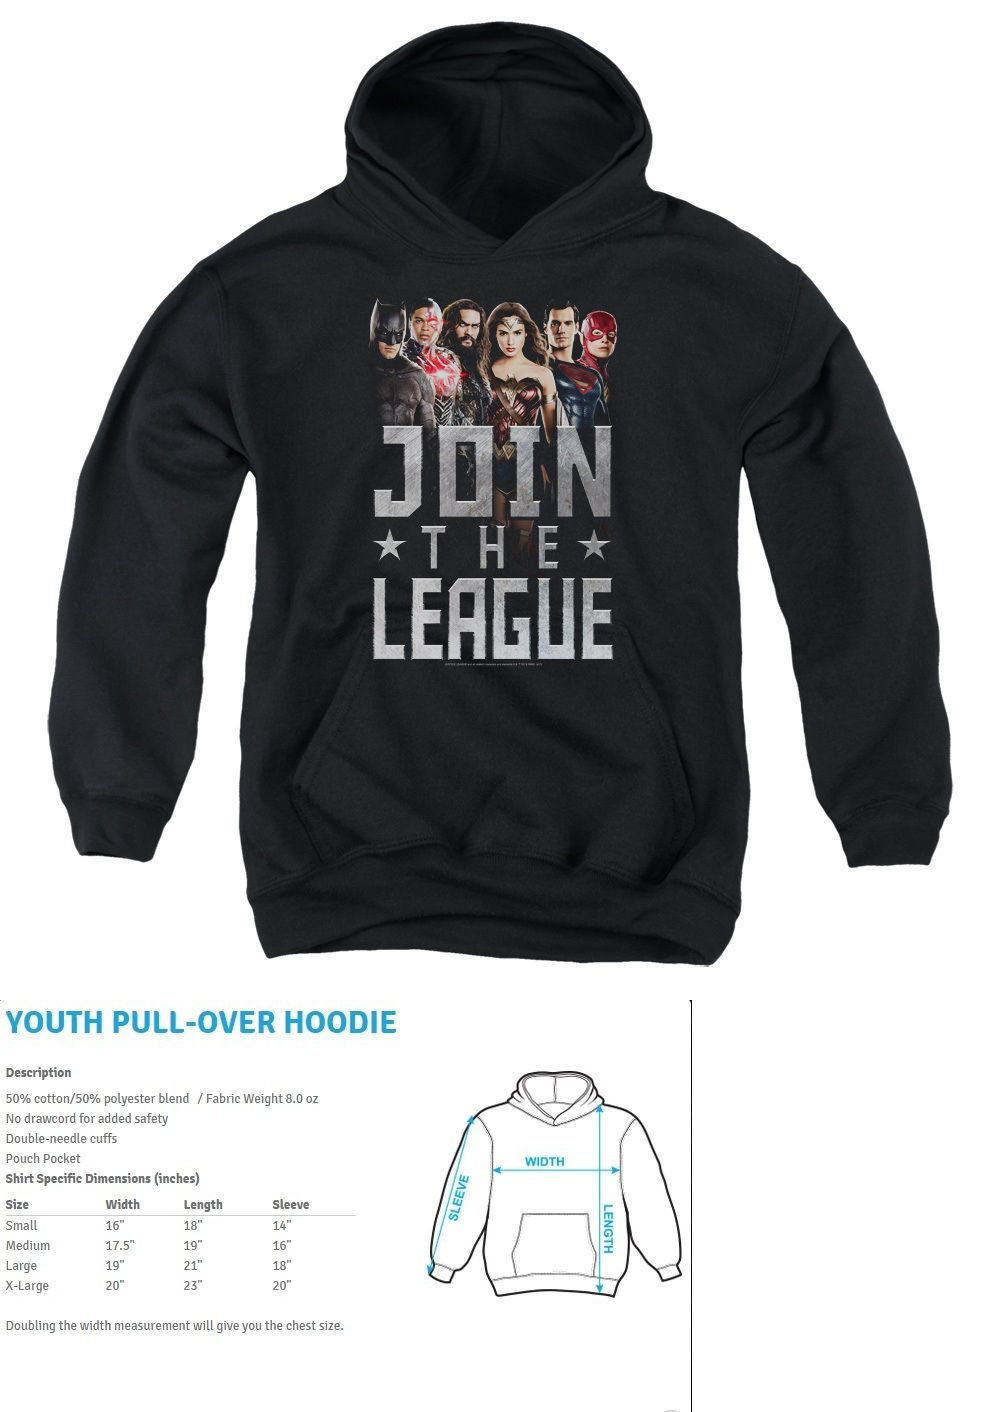 sweatshirts and hoodies 155200: justice league movie join kids